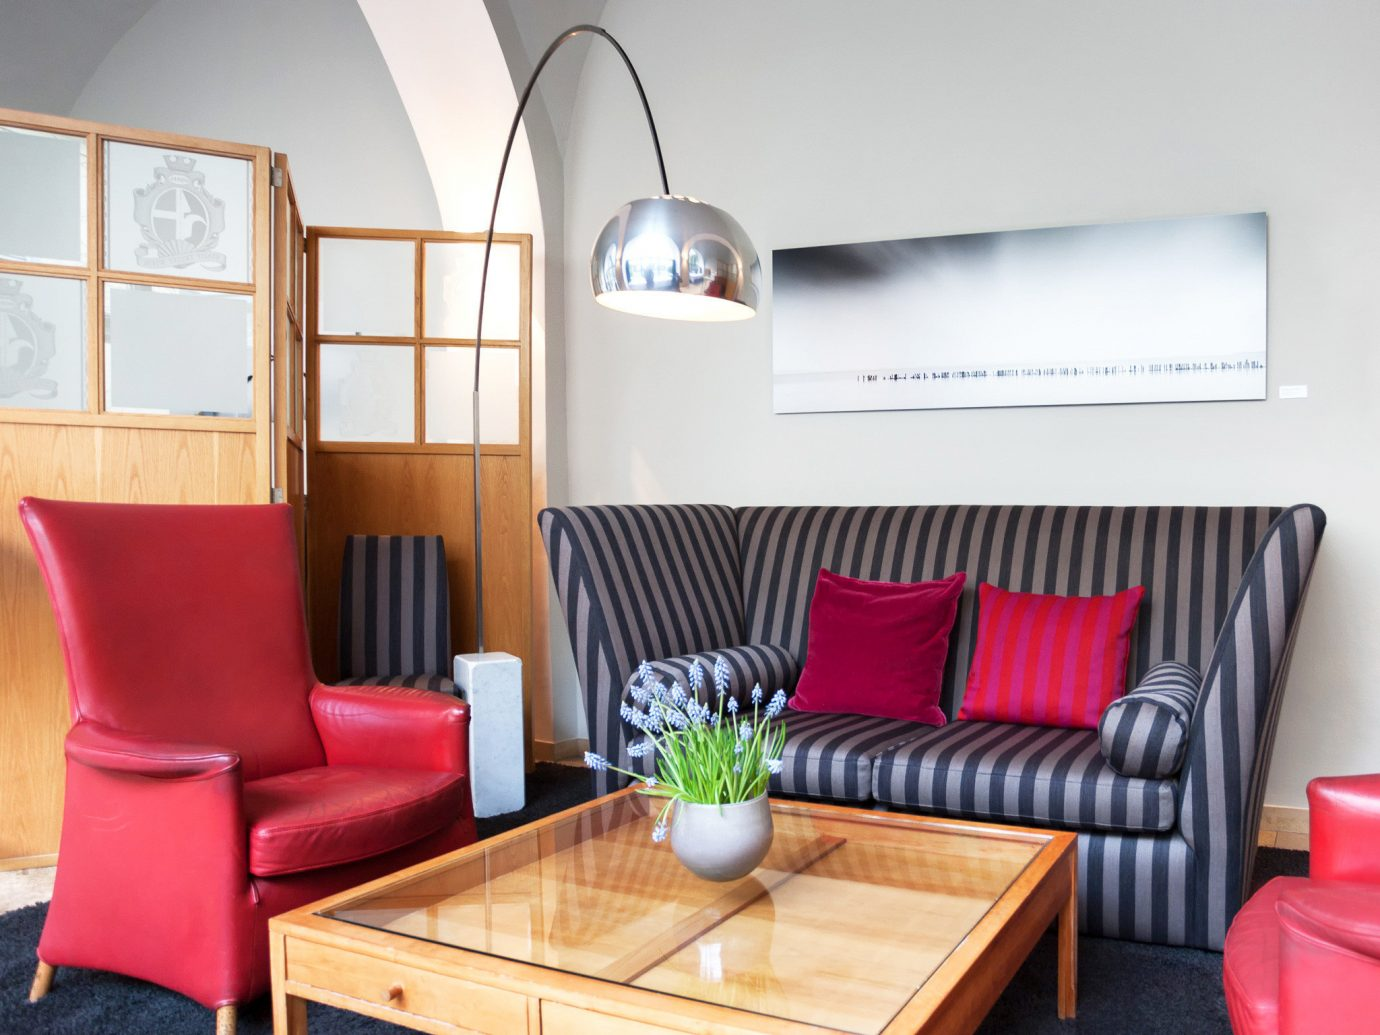 Austria City Design europe Hip Hotels Lounge Modern Vienna floor indoor wall Living room living room property interior design red furniture cottage Suite real estate dining room apartment leather